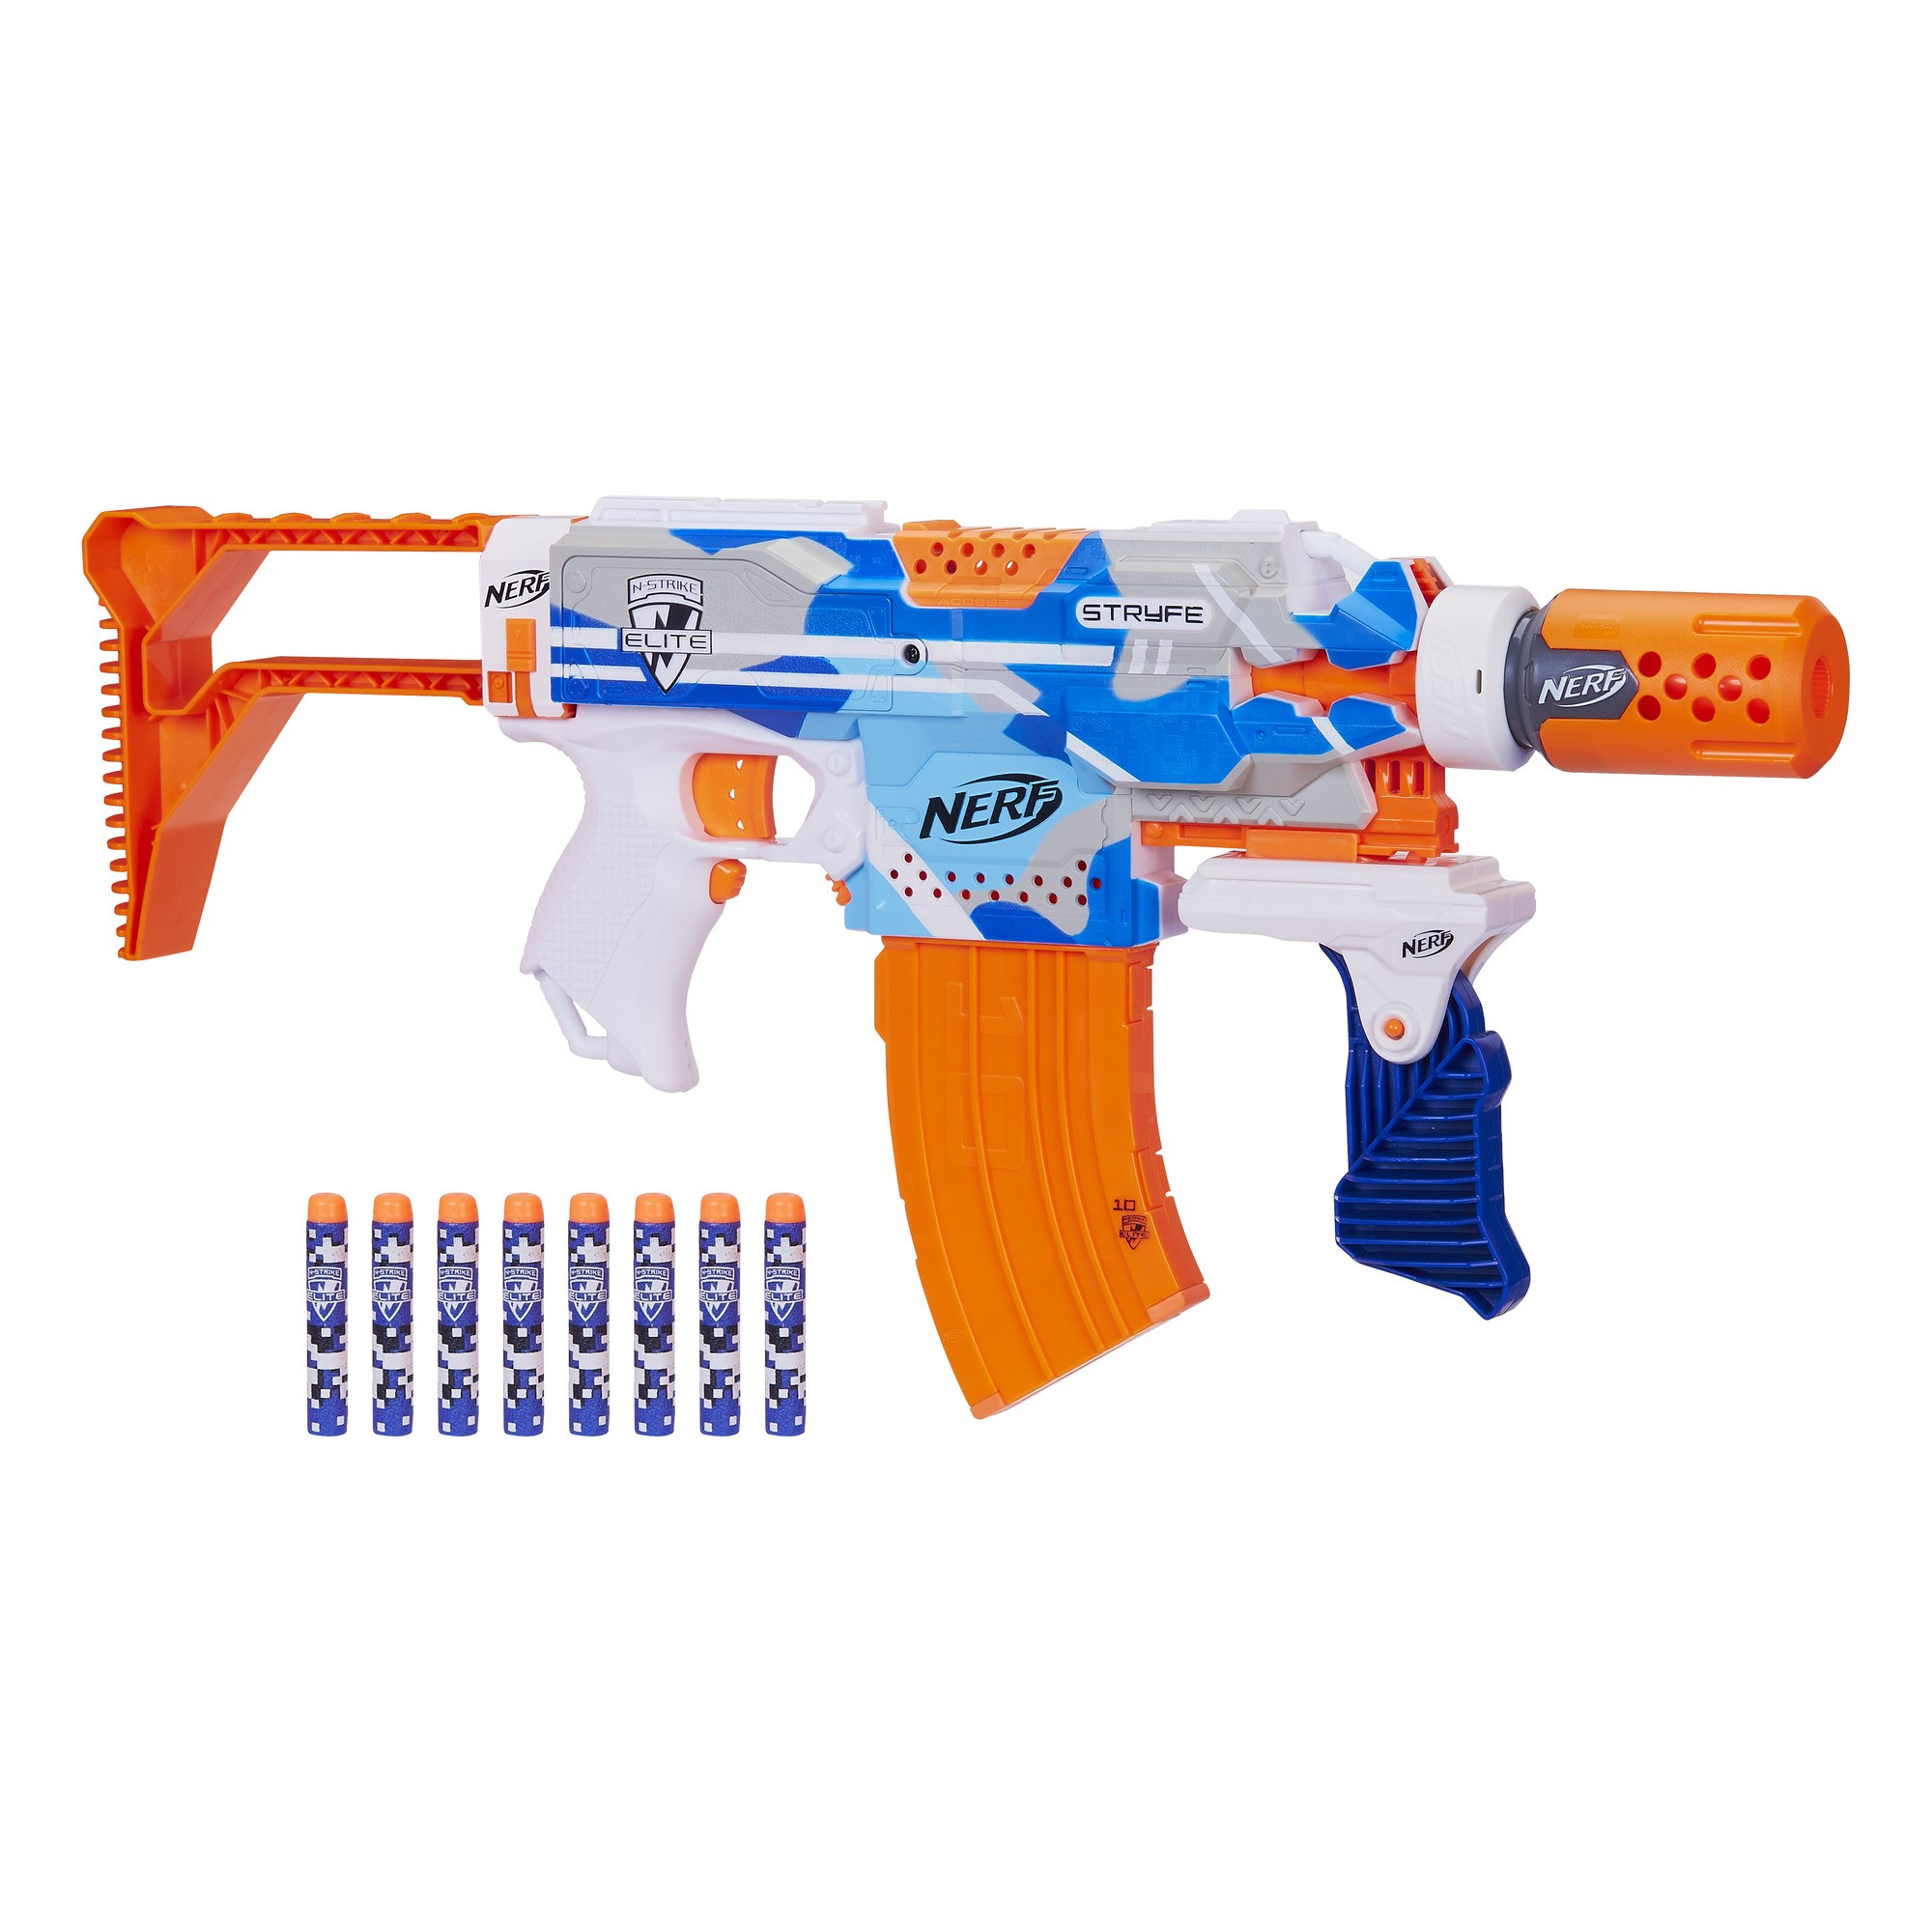 Nerf N-Strike Elite BattleCamo Series Stryfe - Walmart Exclusive